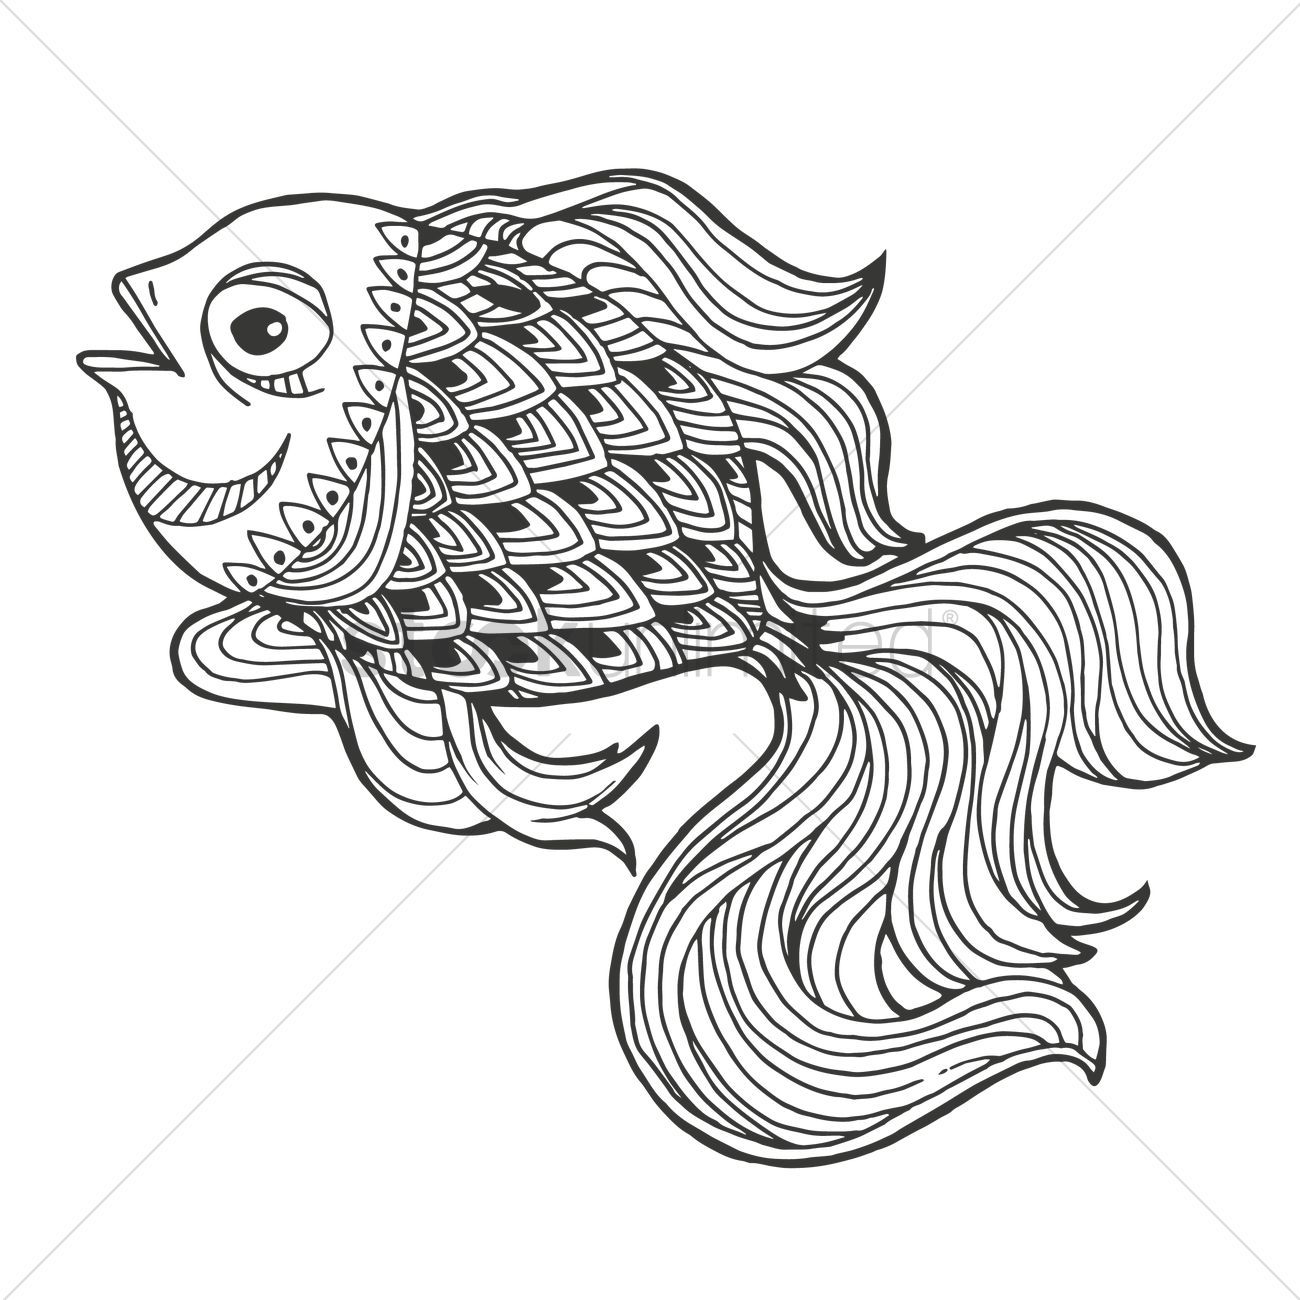 Line Drawing Of Fish : Intricate fish design vector image stockunlimited